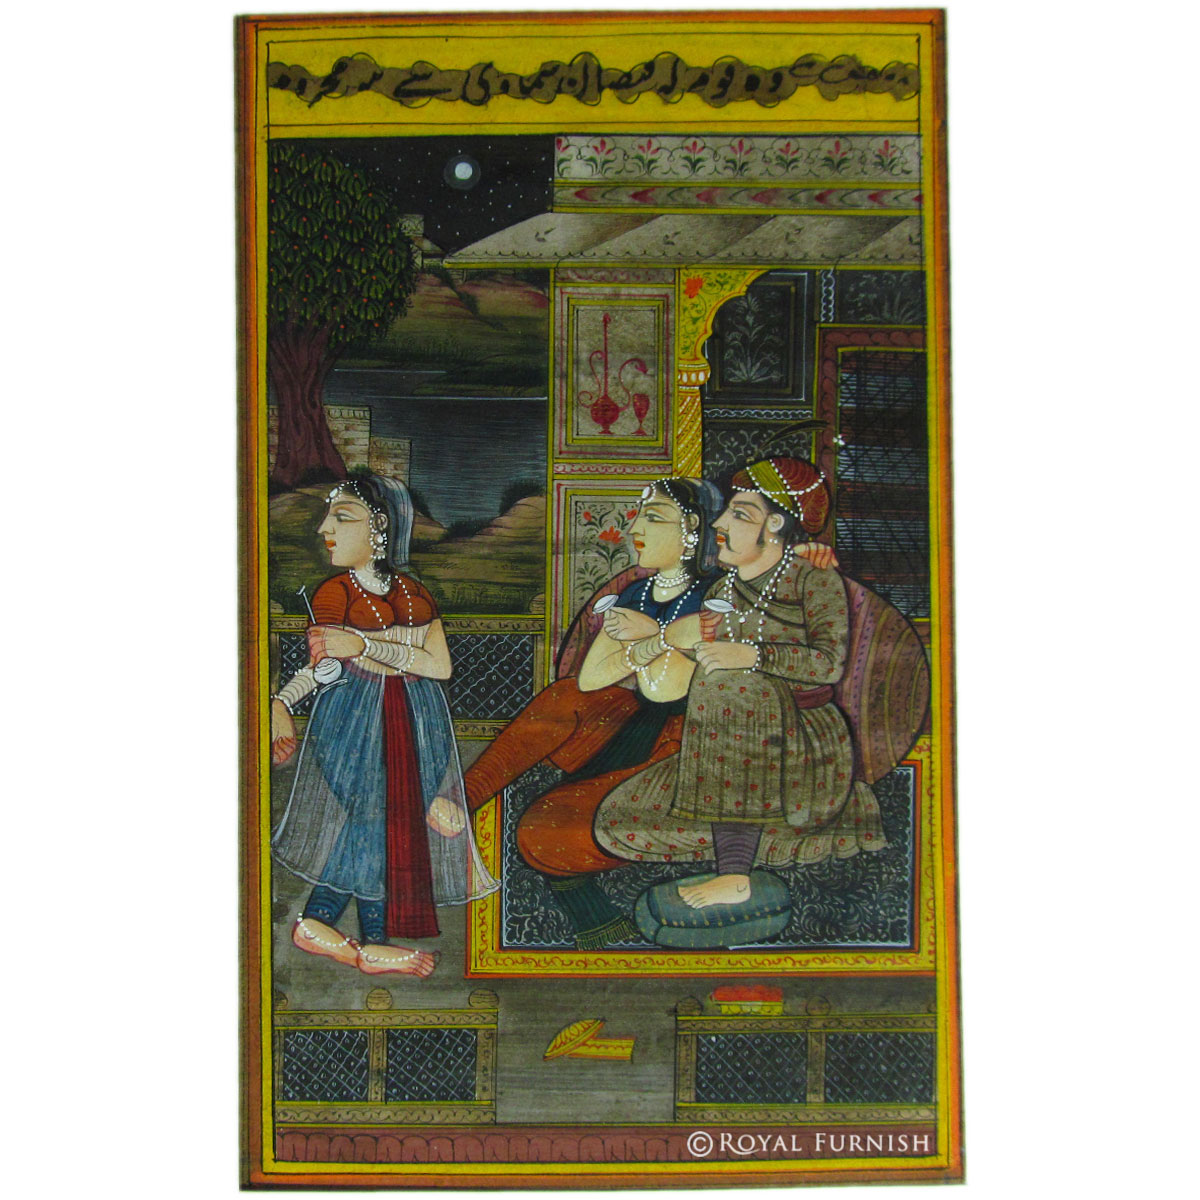 Mughal maharaja love life rajasthani miniature painting wall art Home decor paintings for sale india